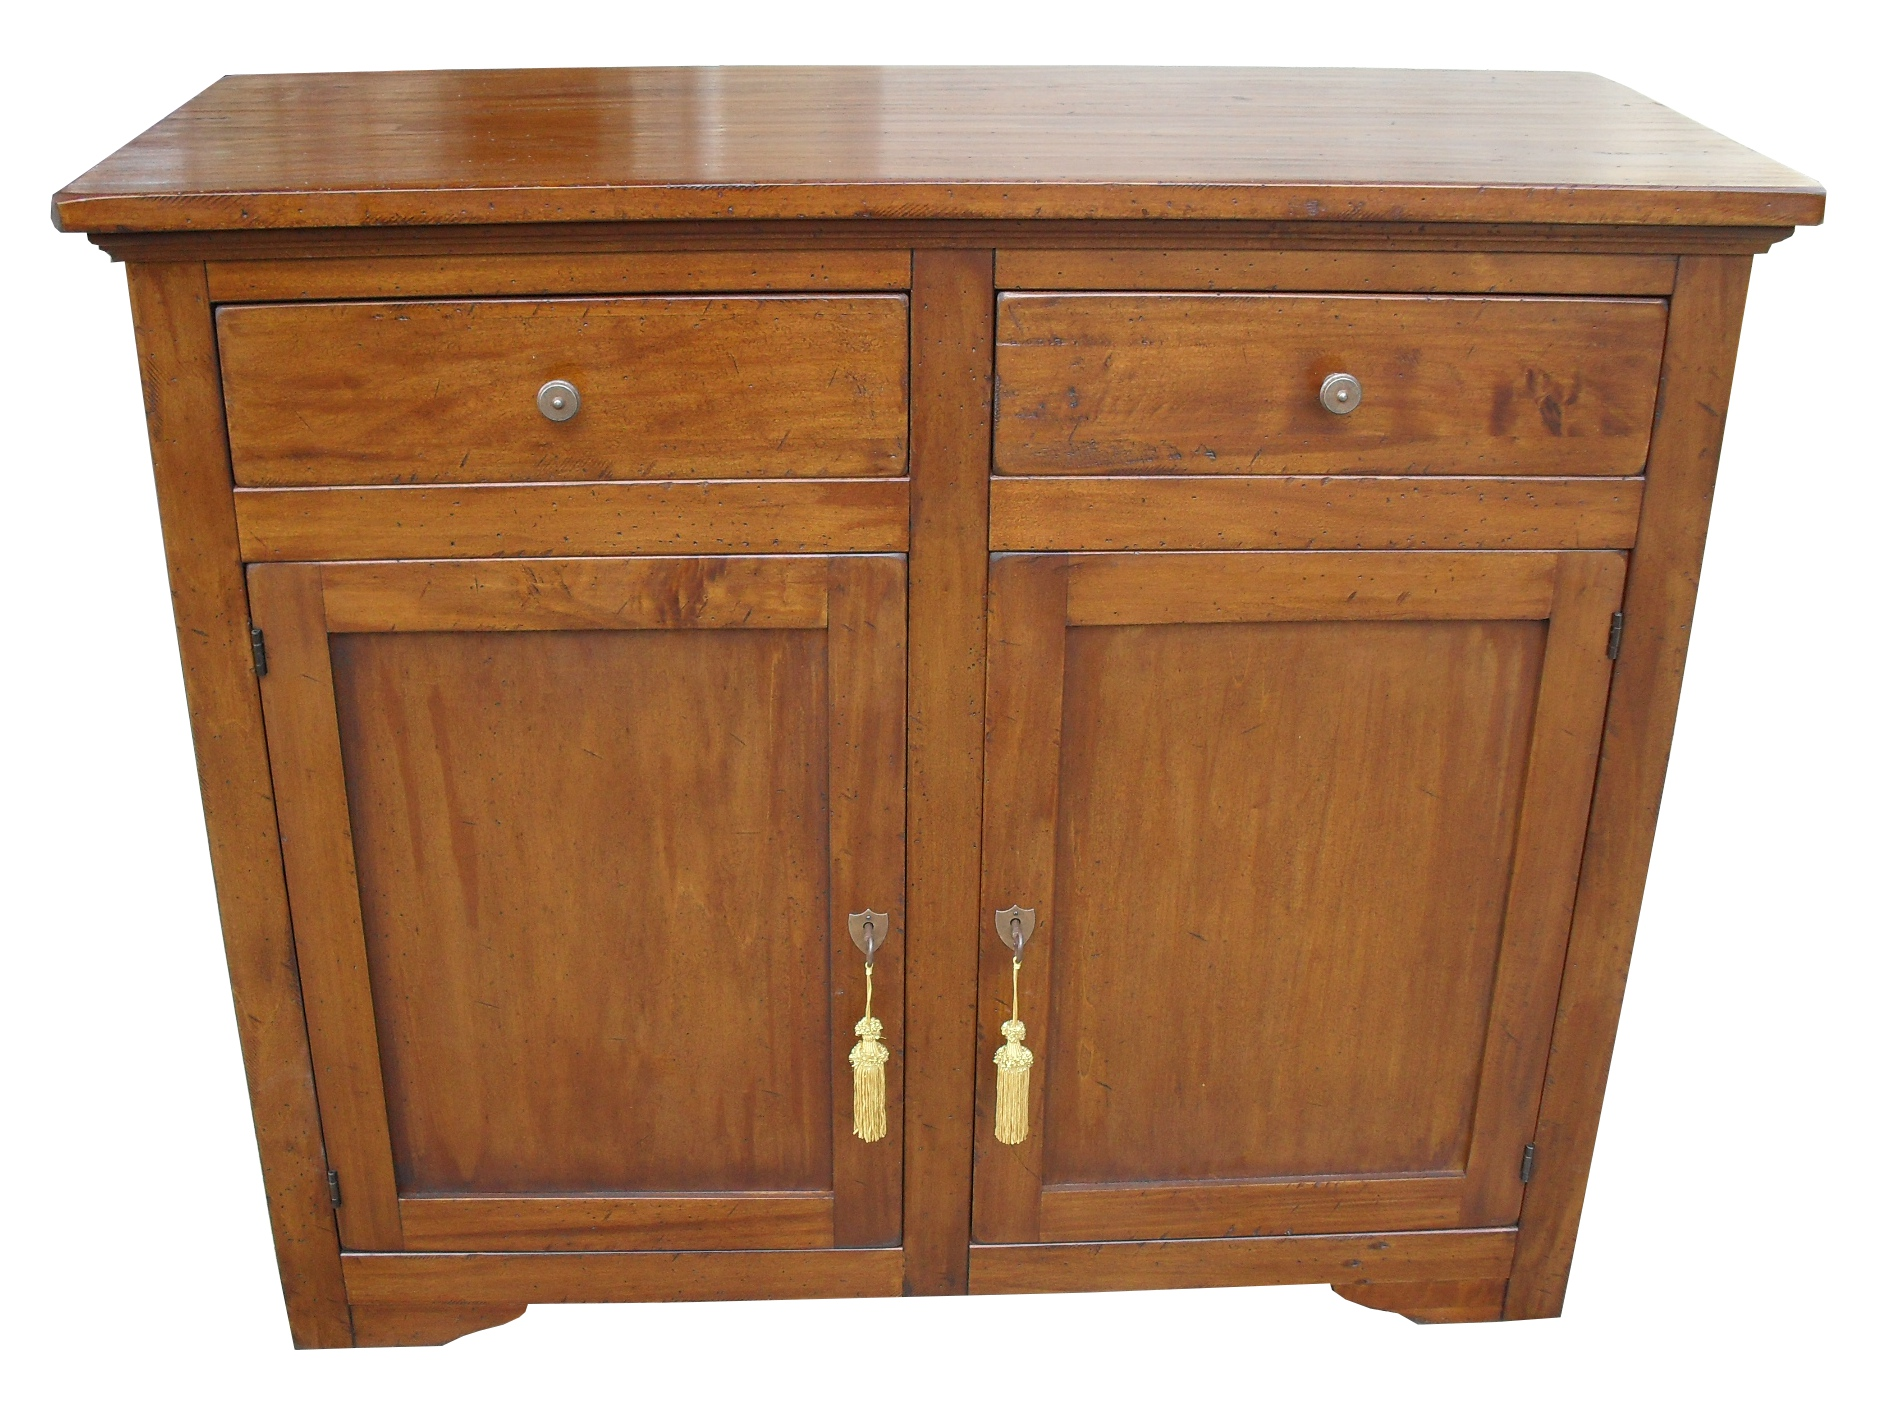 Madia in legno massello arte povera 2 porte la commode for Mercatone uno madia